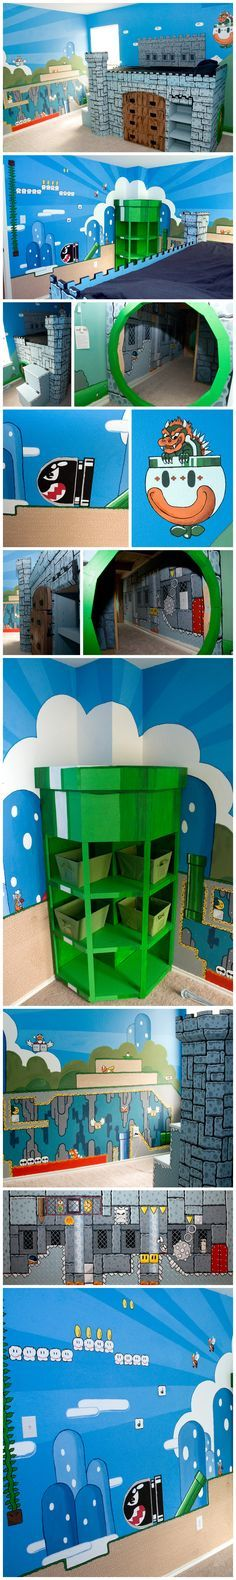 "Super Mario World Kid's Bedroom with custom built Castle Bed, complete with pipe tunnel into the Castle Level. Great Video Game Themed Room. <a class=""pintag"" href=""/explore/mario/"" title=""#mario explore Pinterest"">#mario</a> <a class=""pintag"" href=""/explore/nintendo/"" title=""#nintendo explore Pinterest"">#nintendo</a> <a class=""pintag searchlink"" data-query=""%23mural"" data-type=""hashtag"" href=""/search/?q=%23mural&rs=hashtag"" rel=""nofollow"" title=""#mural search Pinterest"">#mural</a>"